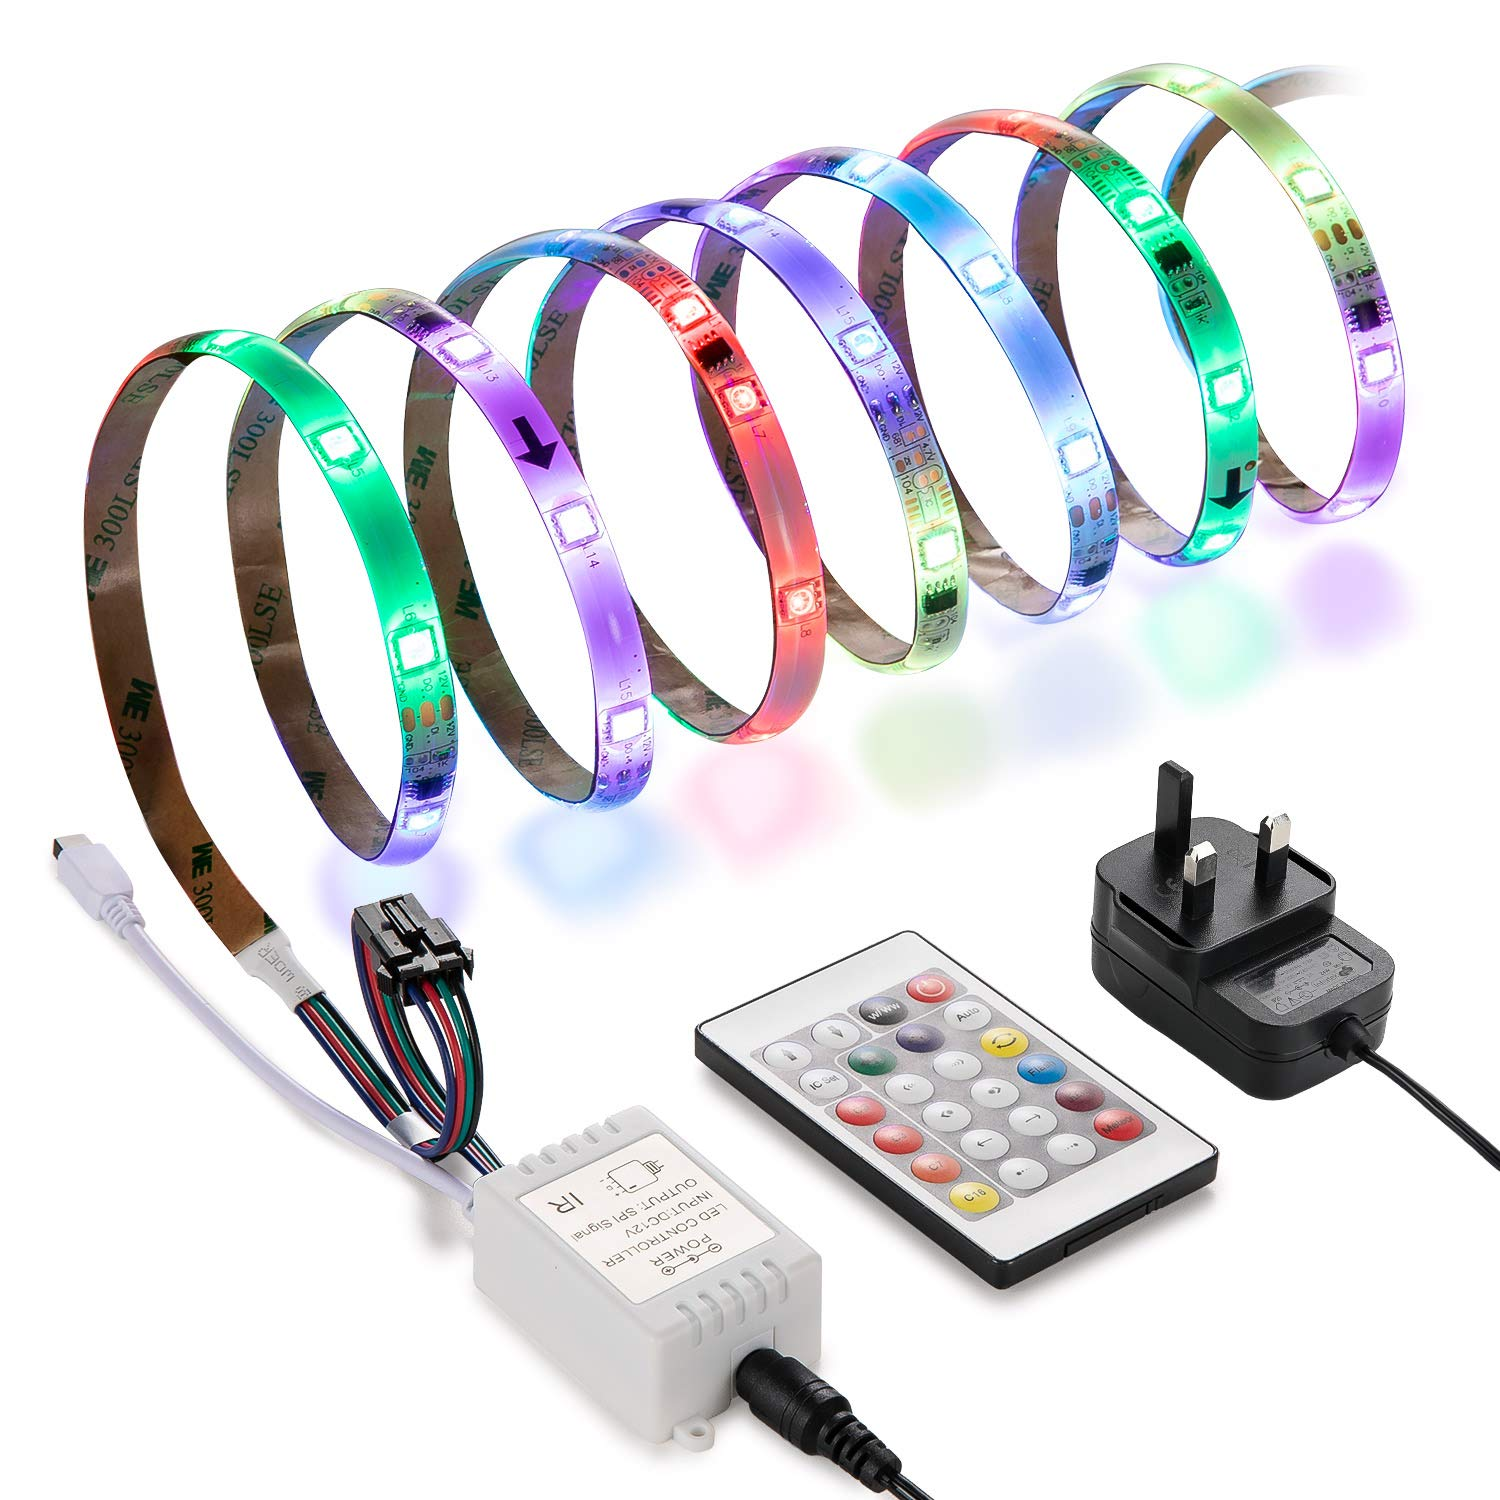 LED RGB Strip Light, Linkind 5m Waterproof Rope Lighting, Color Changing Complete Set with IR Remote Controller & UK Plug, LED Strips Light for Home, Garden bar